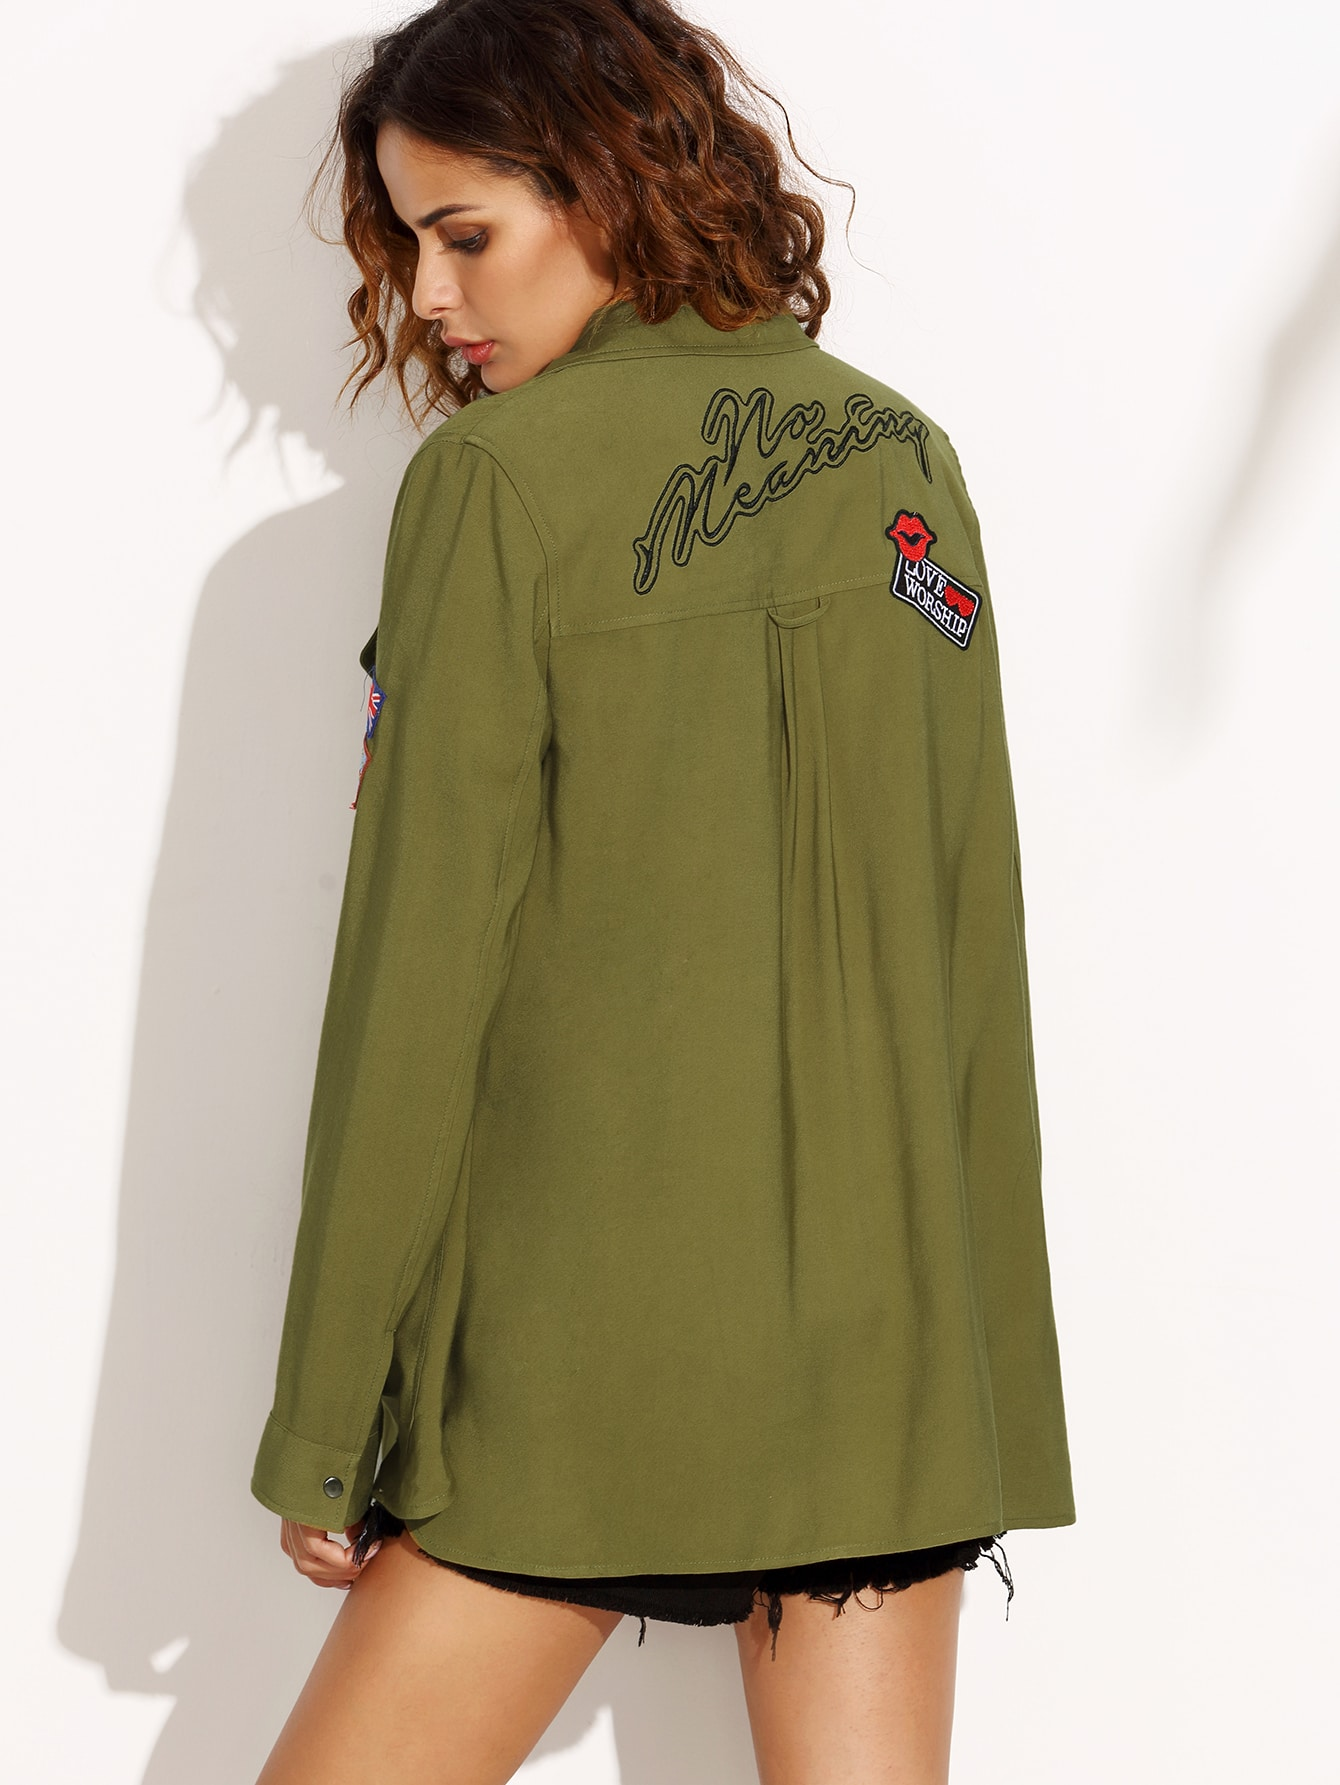 Olive Green Military Shirt Jacket With Embroidered Patch Detail